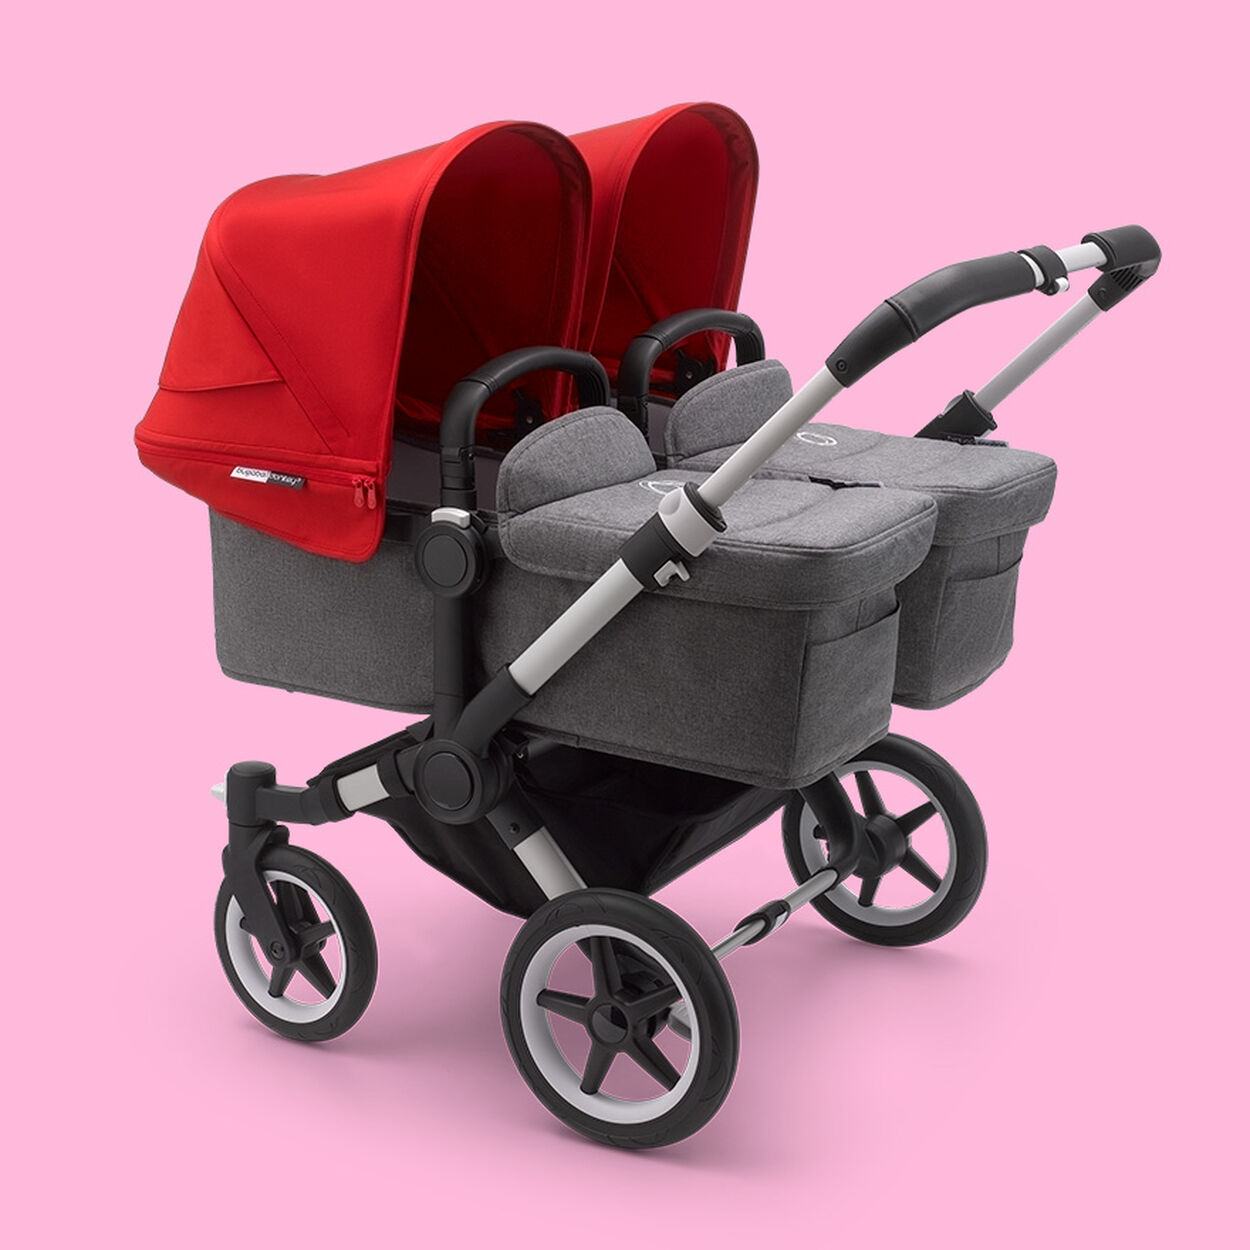 Donkey 3 Twin stroller with two bassinets